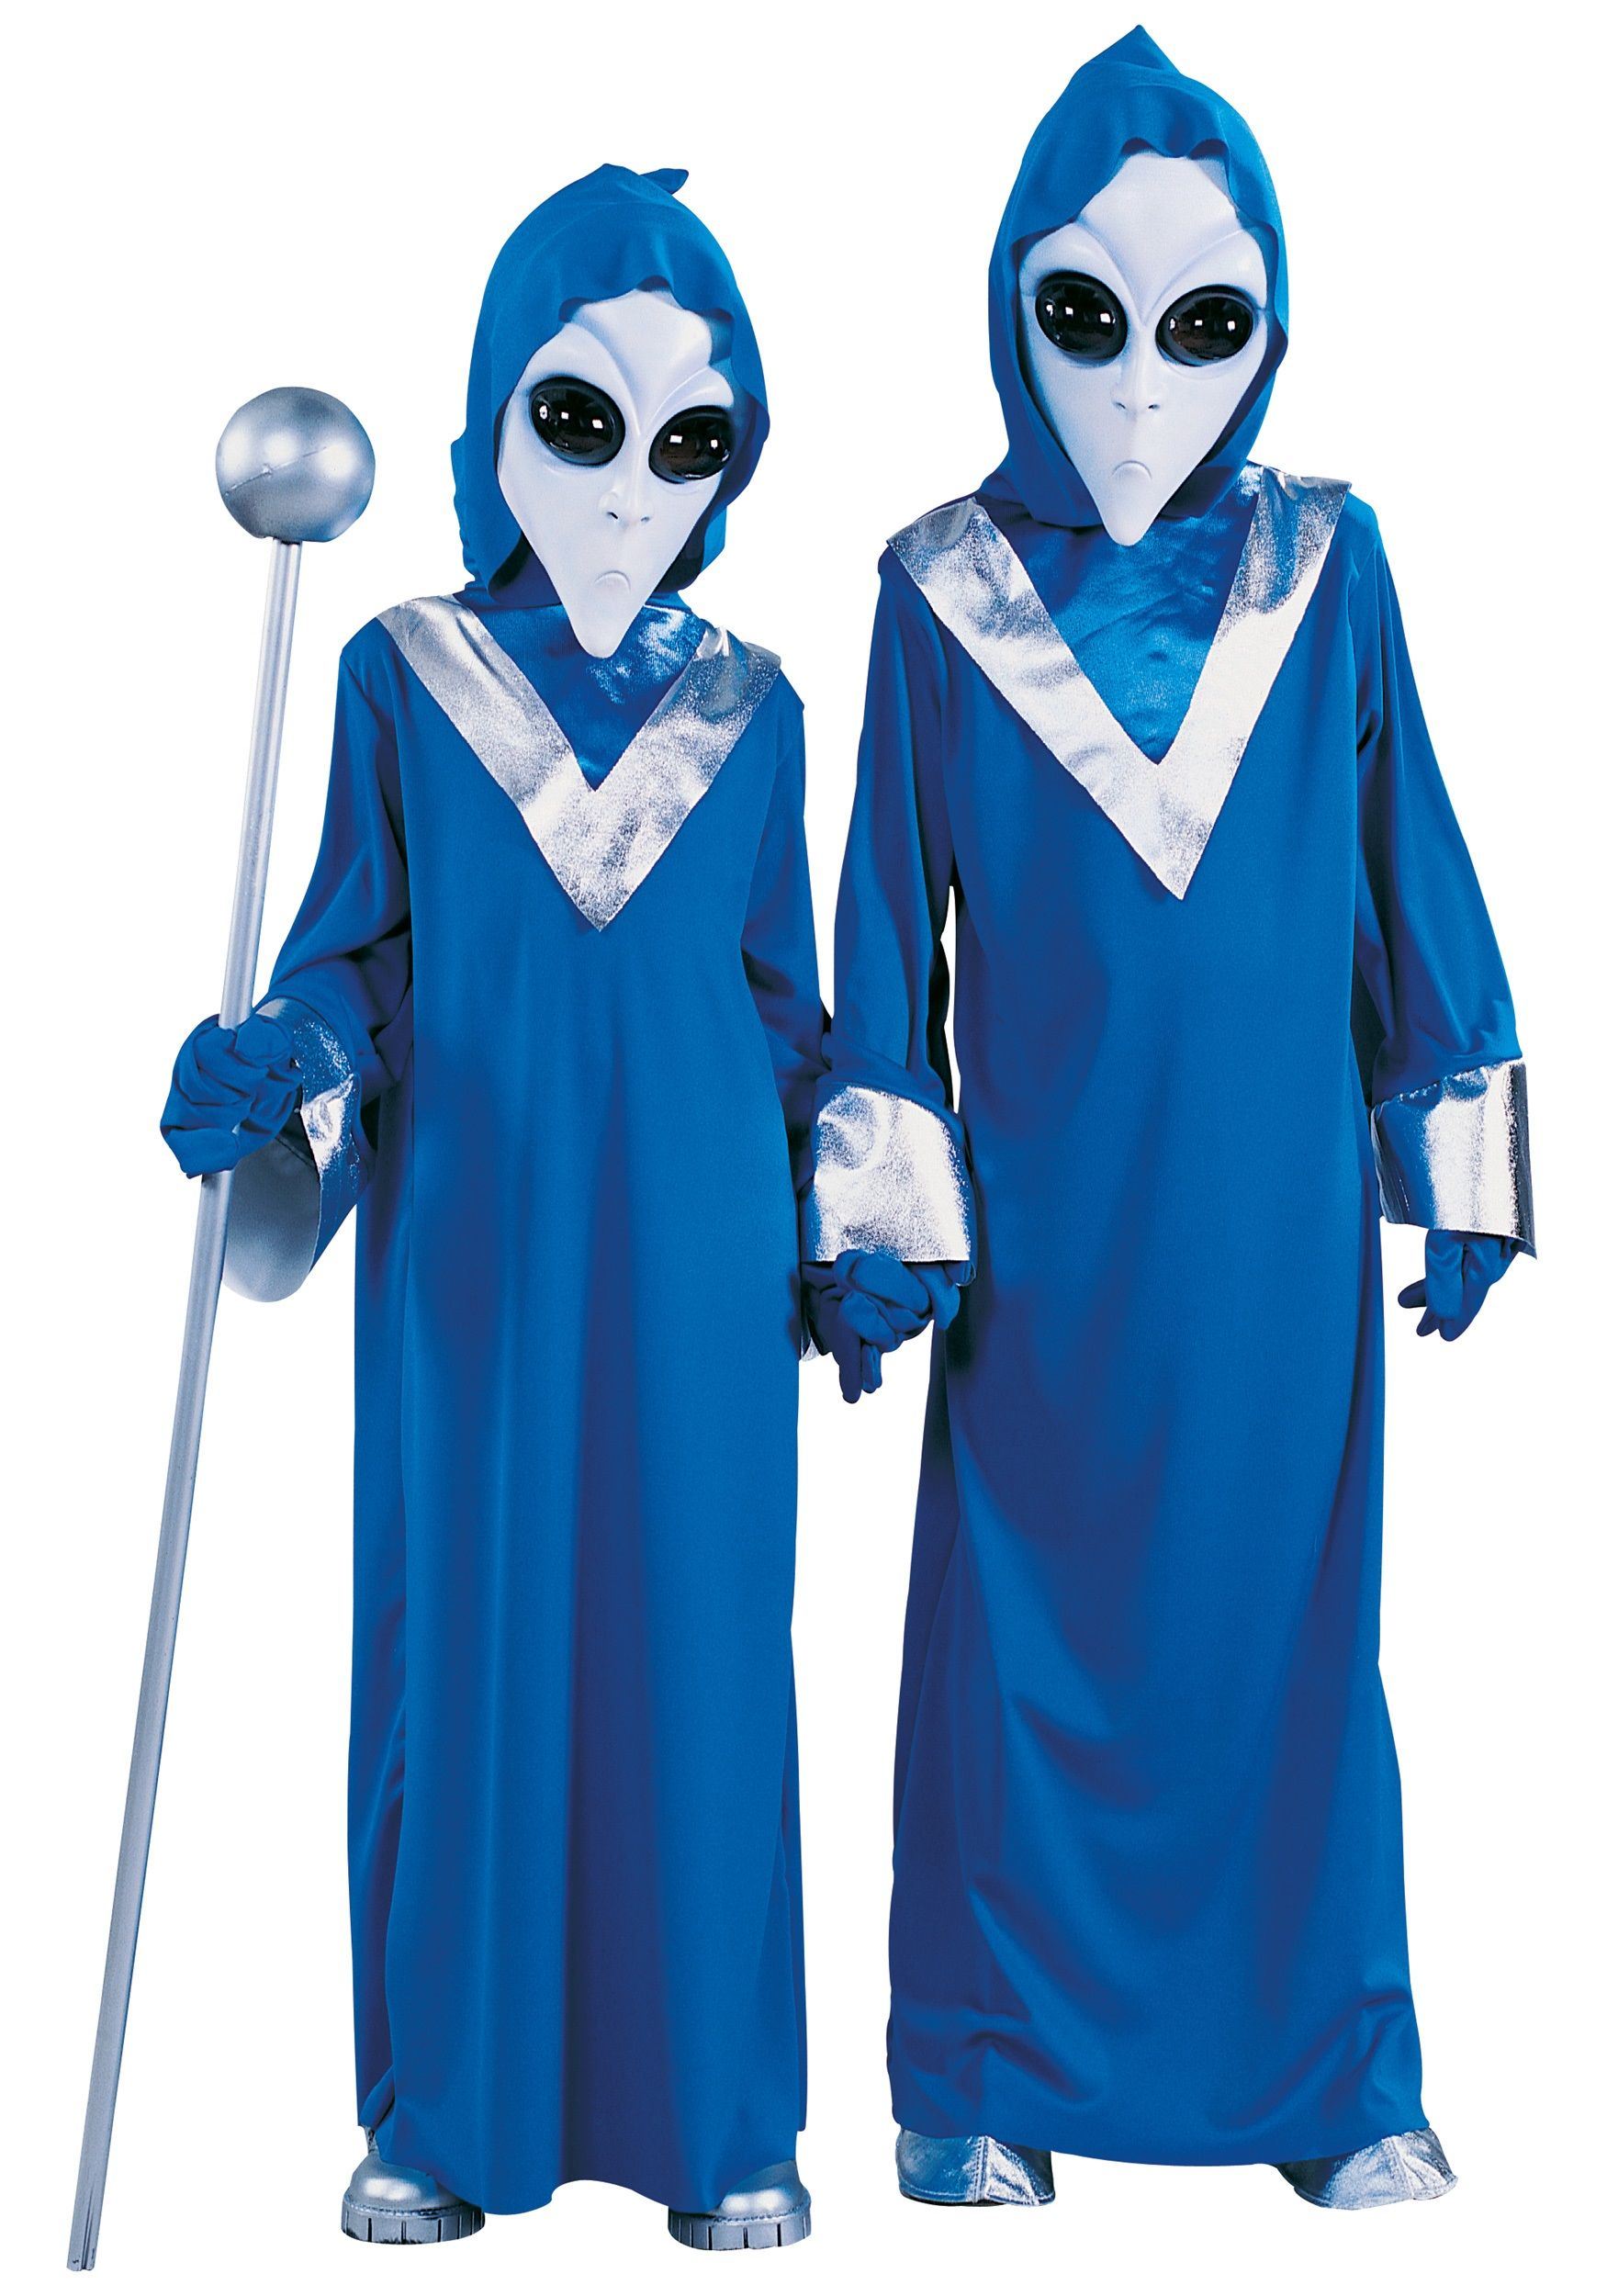 images.halloweencostumes.com products 4648 1-1 child-space-alien-costume.jpg